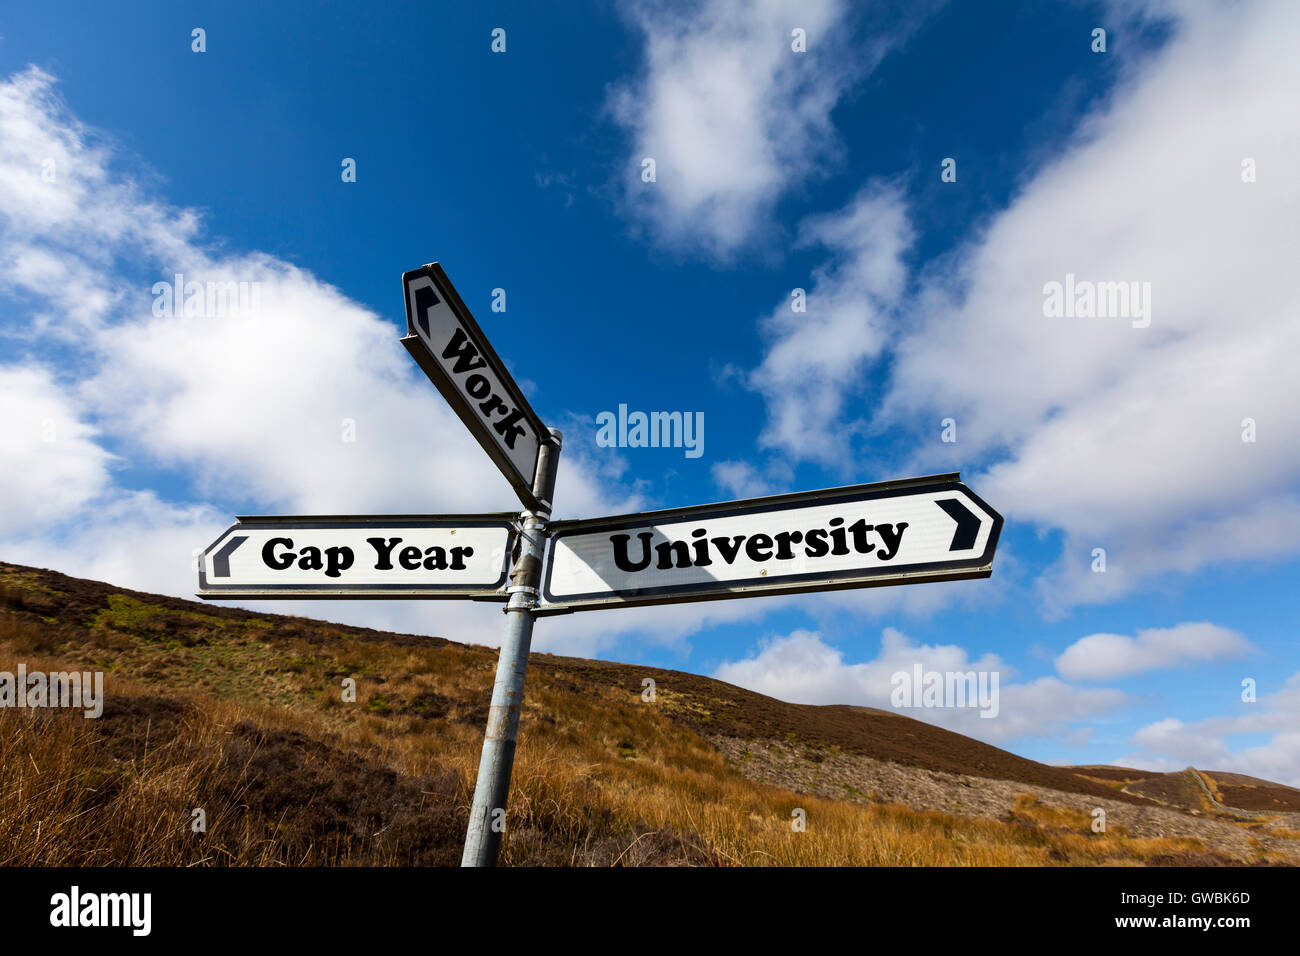 Gap year university work future choice choose life decision decide further education direction sign words antonym - Stock Image